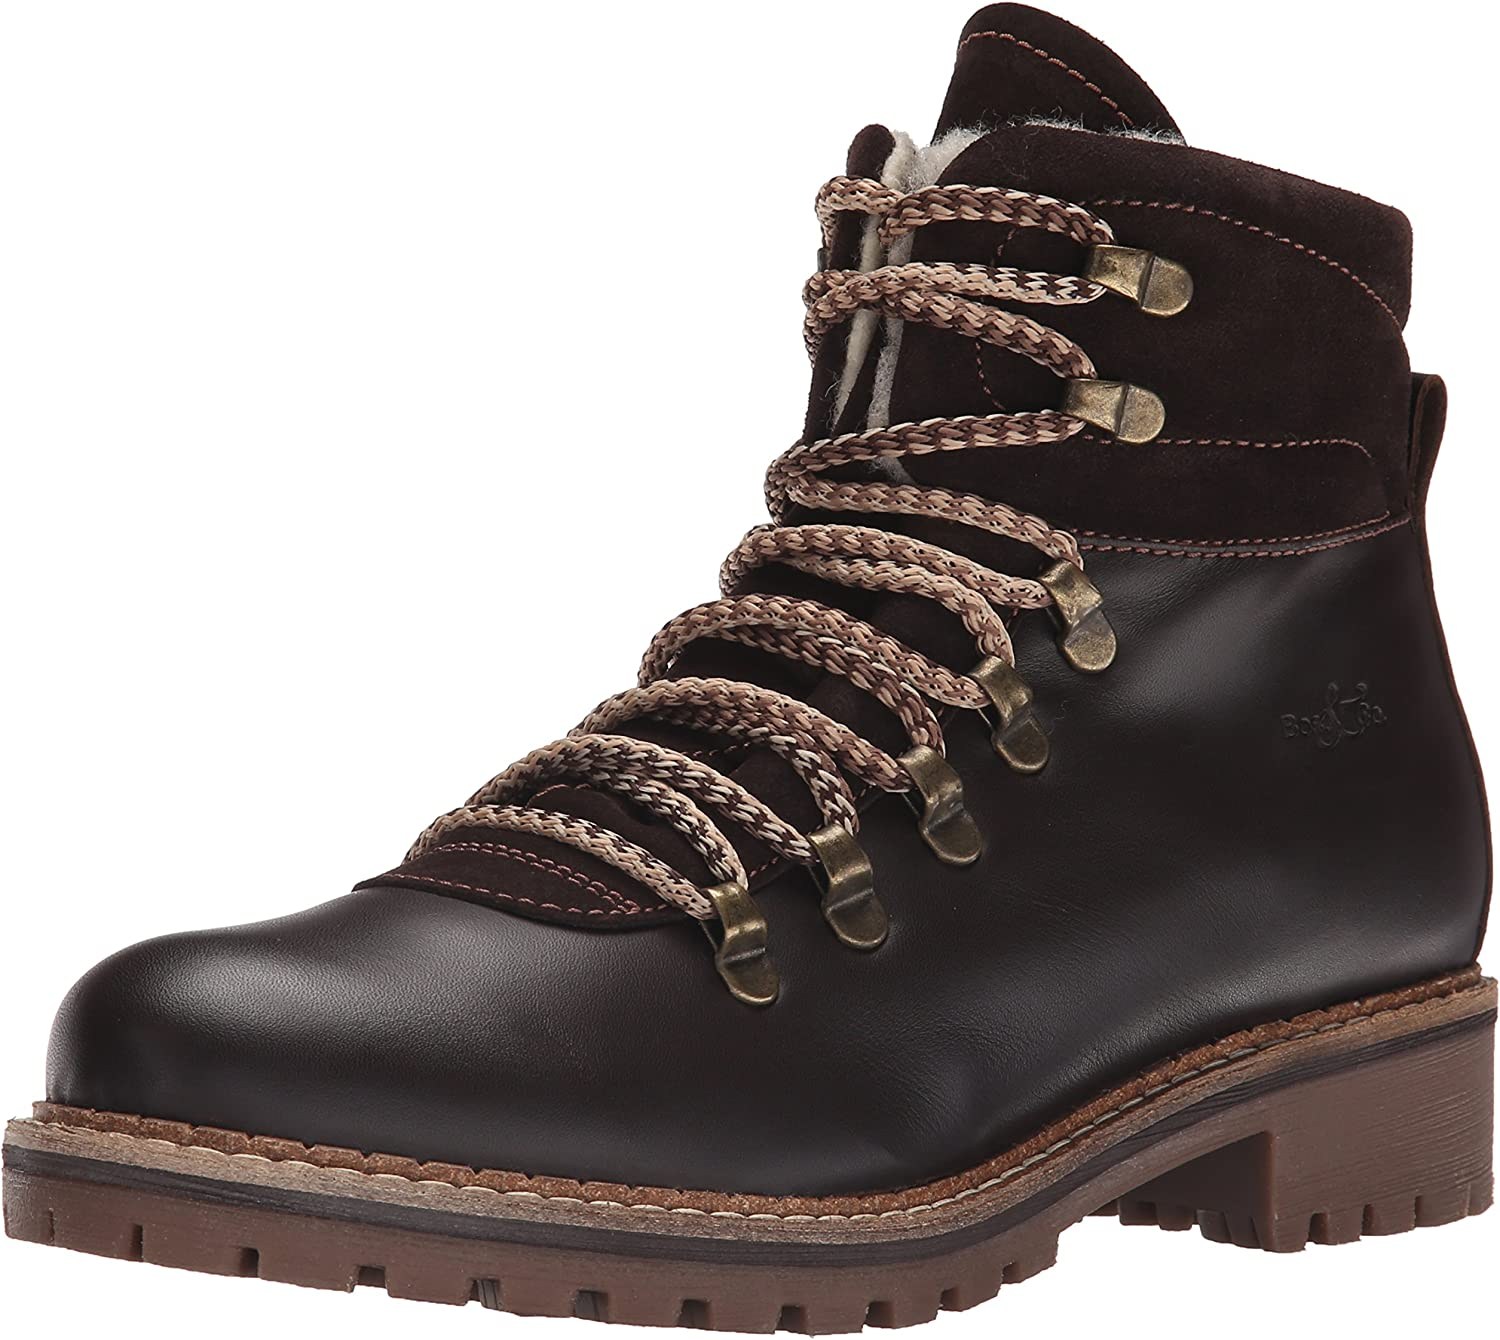 Bos. & Co. Women's Howe Boot